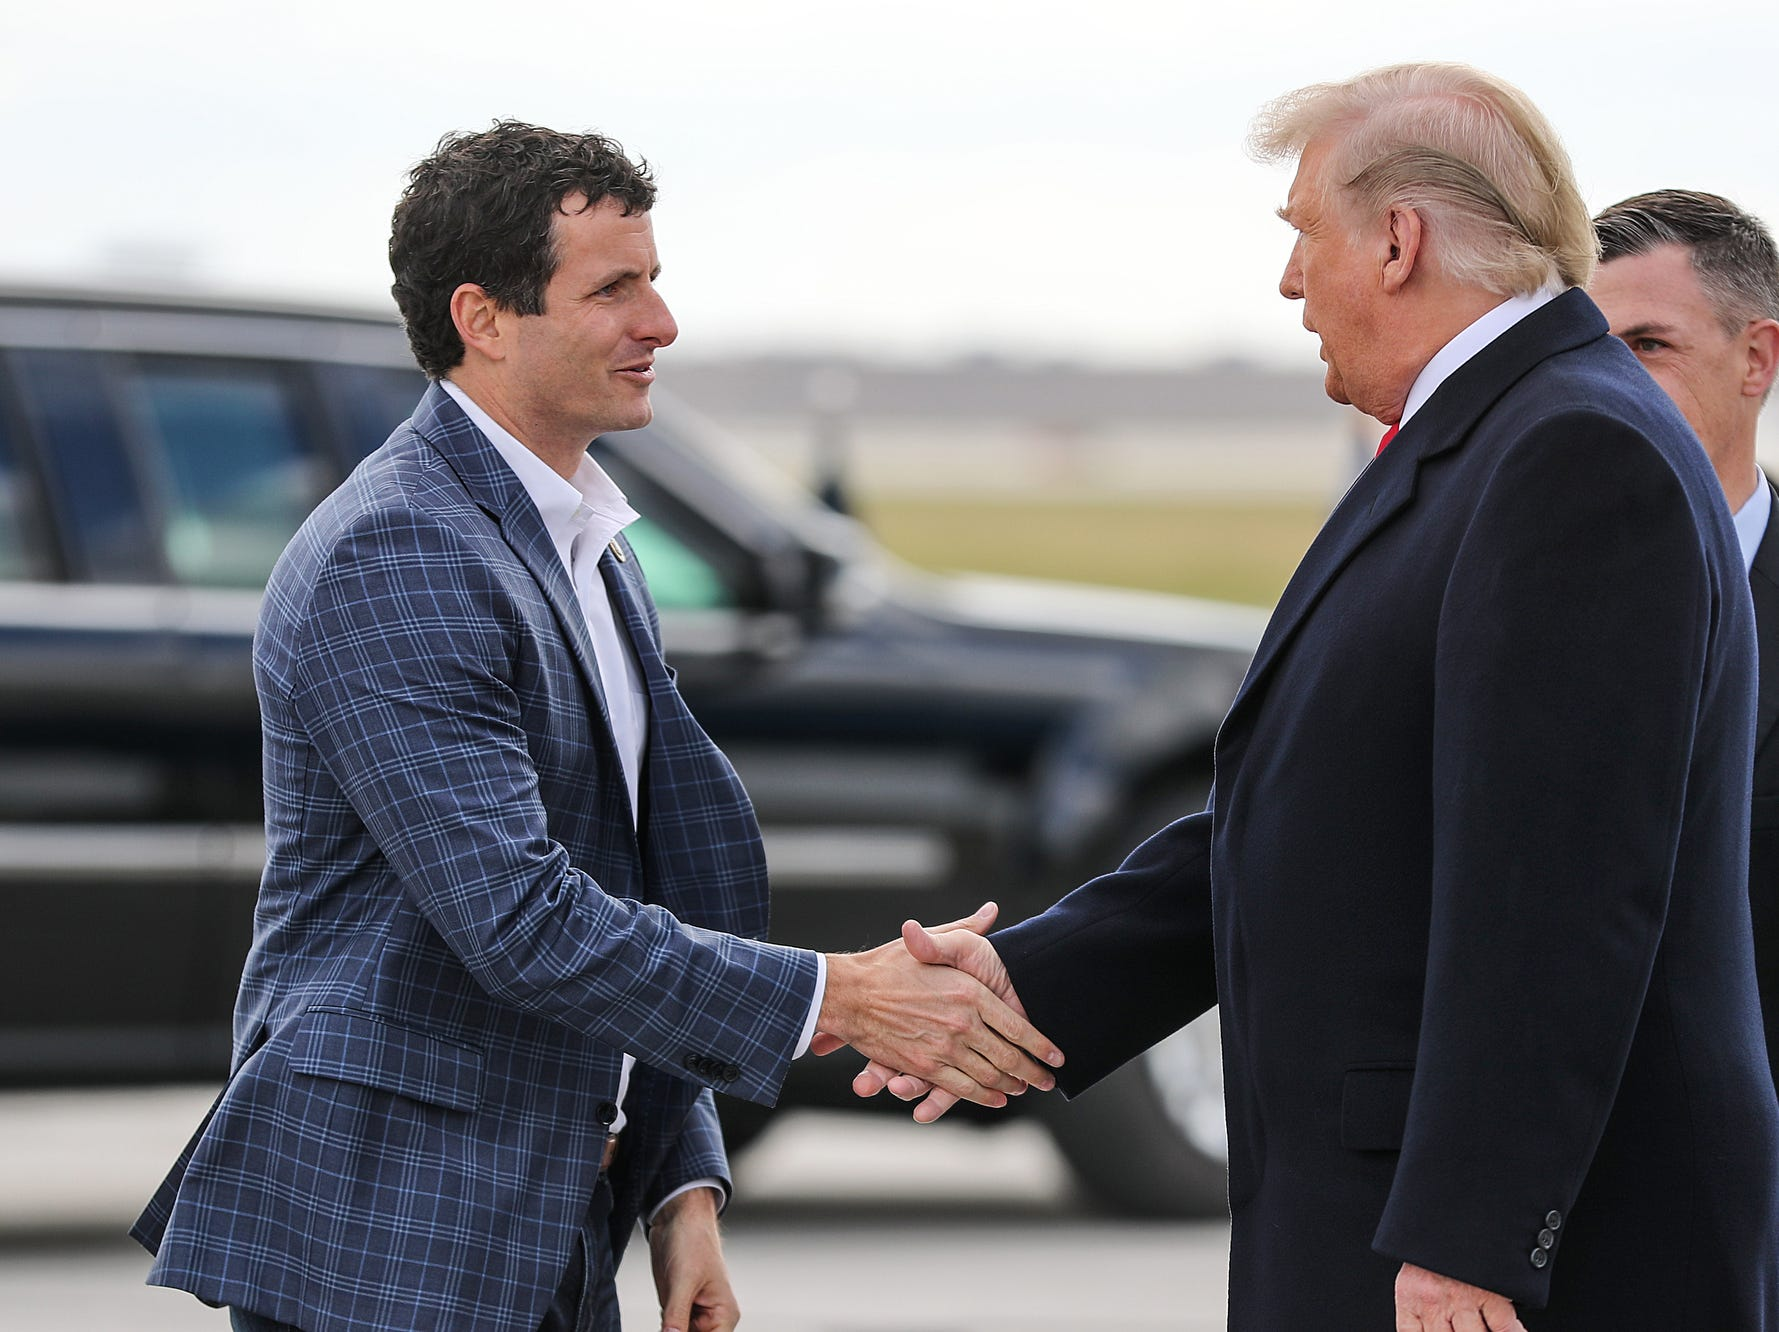 United States President Donald Trump greets Congressman Trey Hollingsworth on the tarmac at Indianapolis International Airport, where he arrived to speak at the annual Future Farmers of America Convention and Expo at Banker's Life Fieldhouse, Saturday, Oct. 27, 2018.